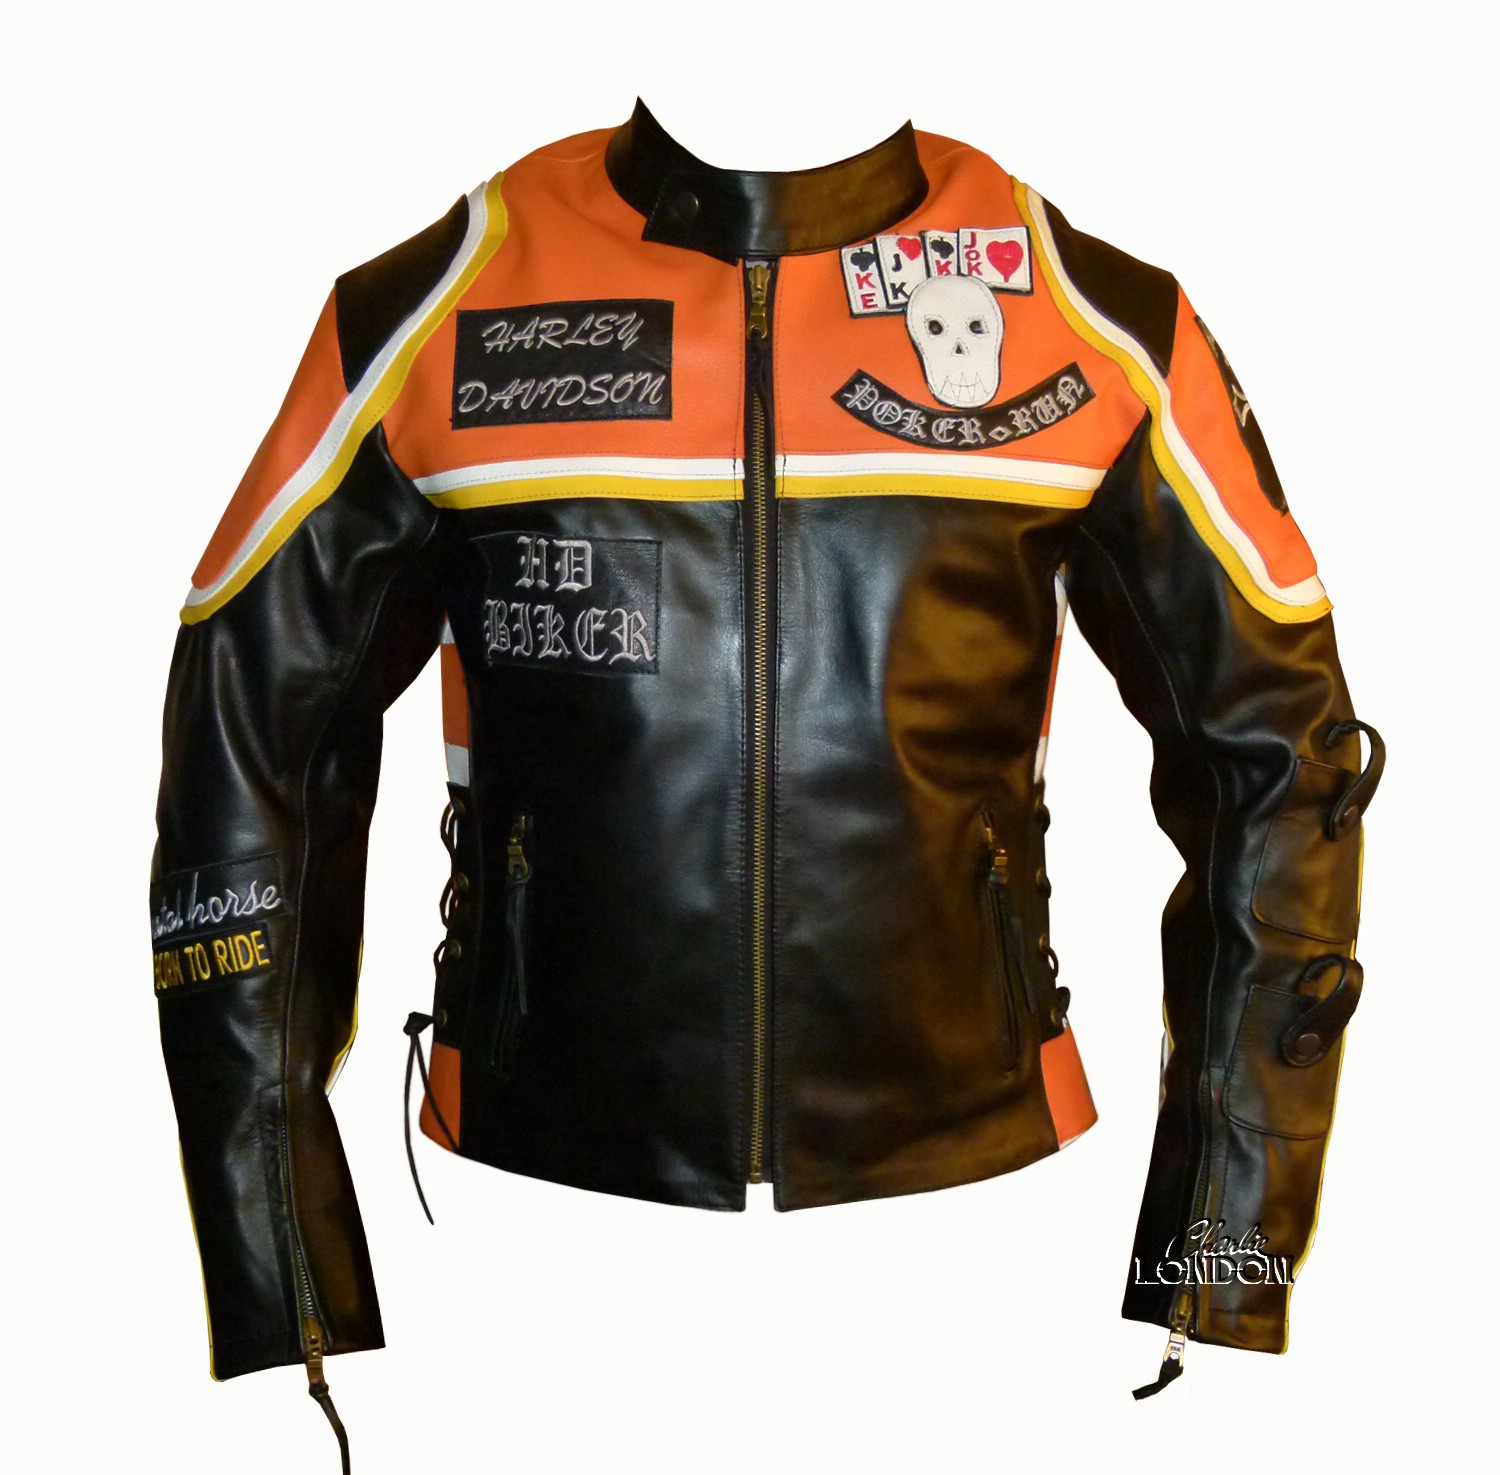 Harley Davidson and the Marlboro Man Costume